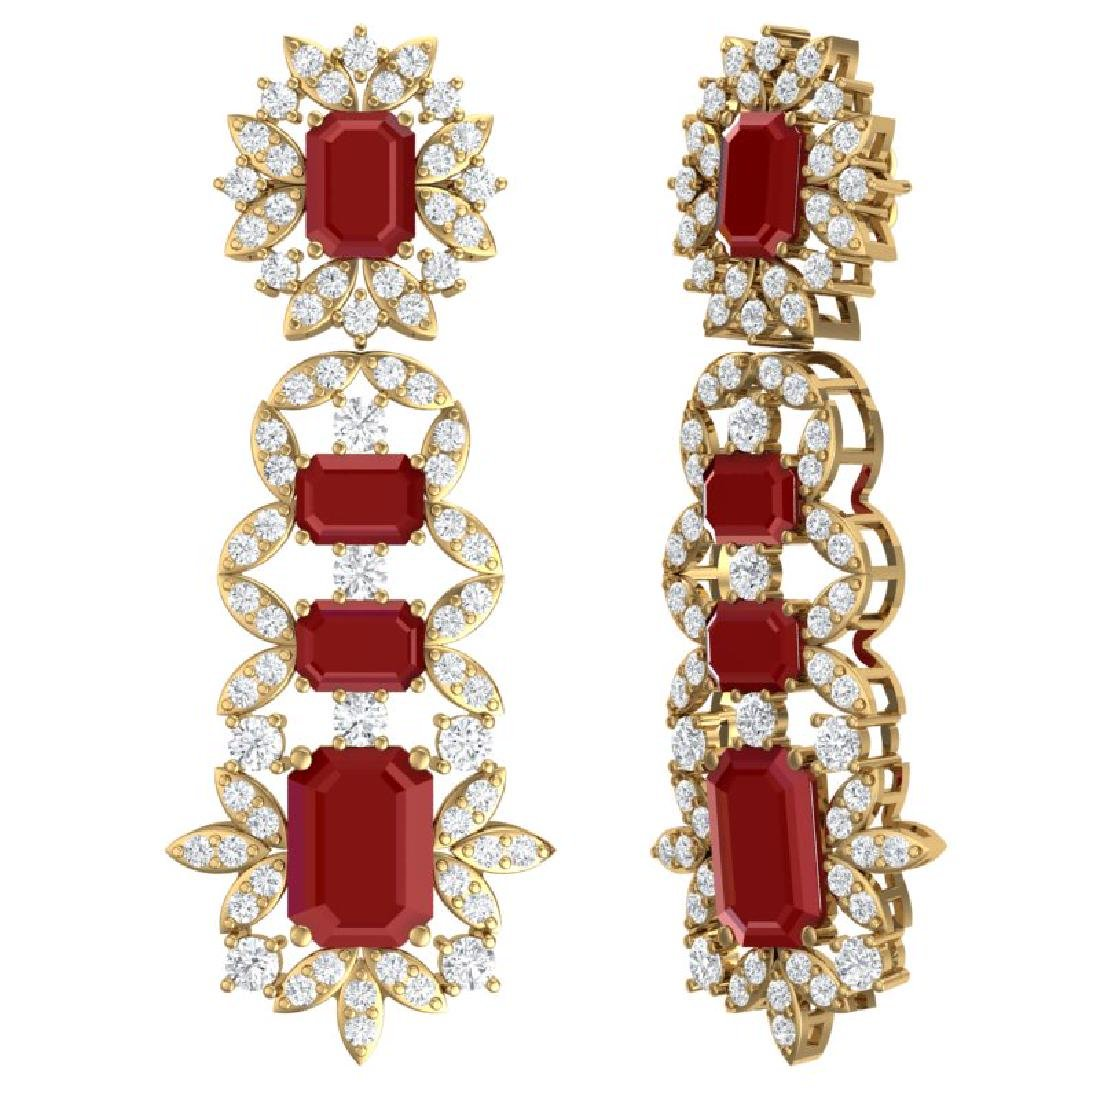 30.25 CTW Royalty Designer Ruby & VS Diamond Earrings - 3